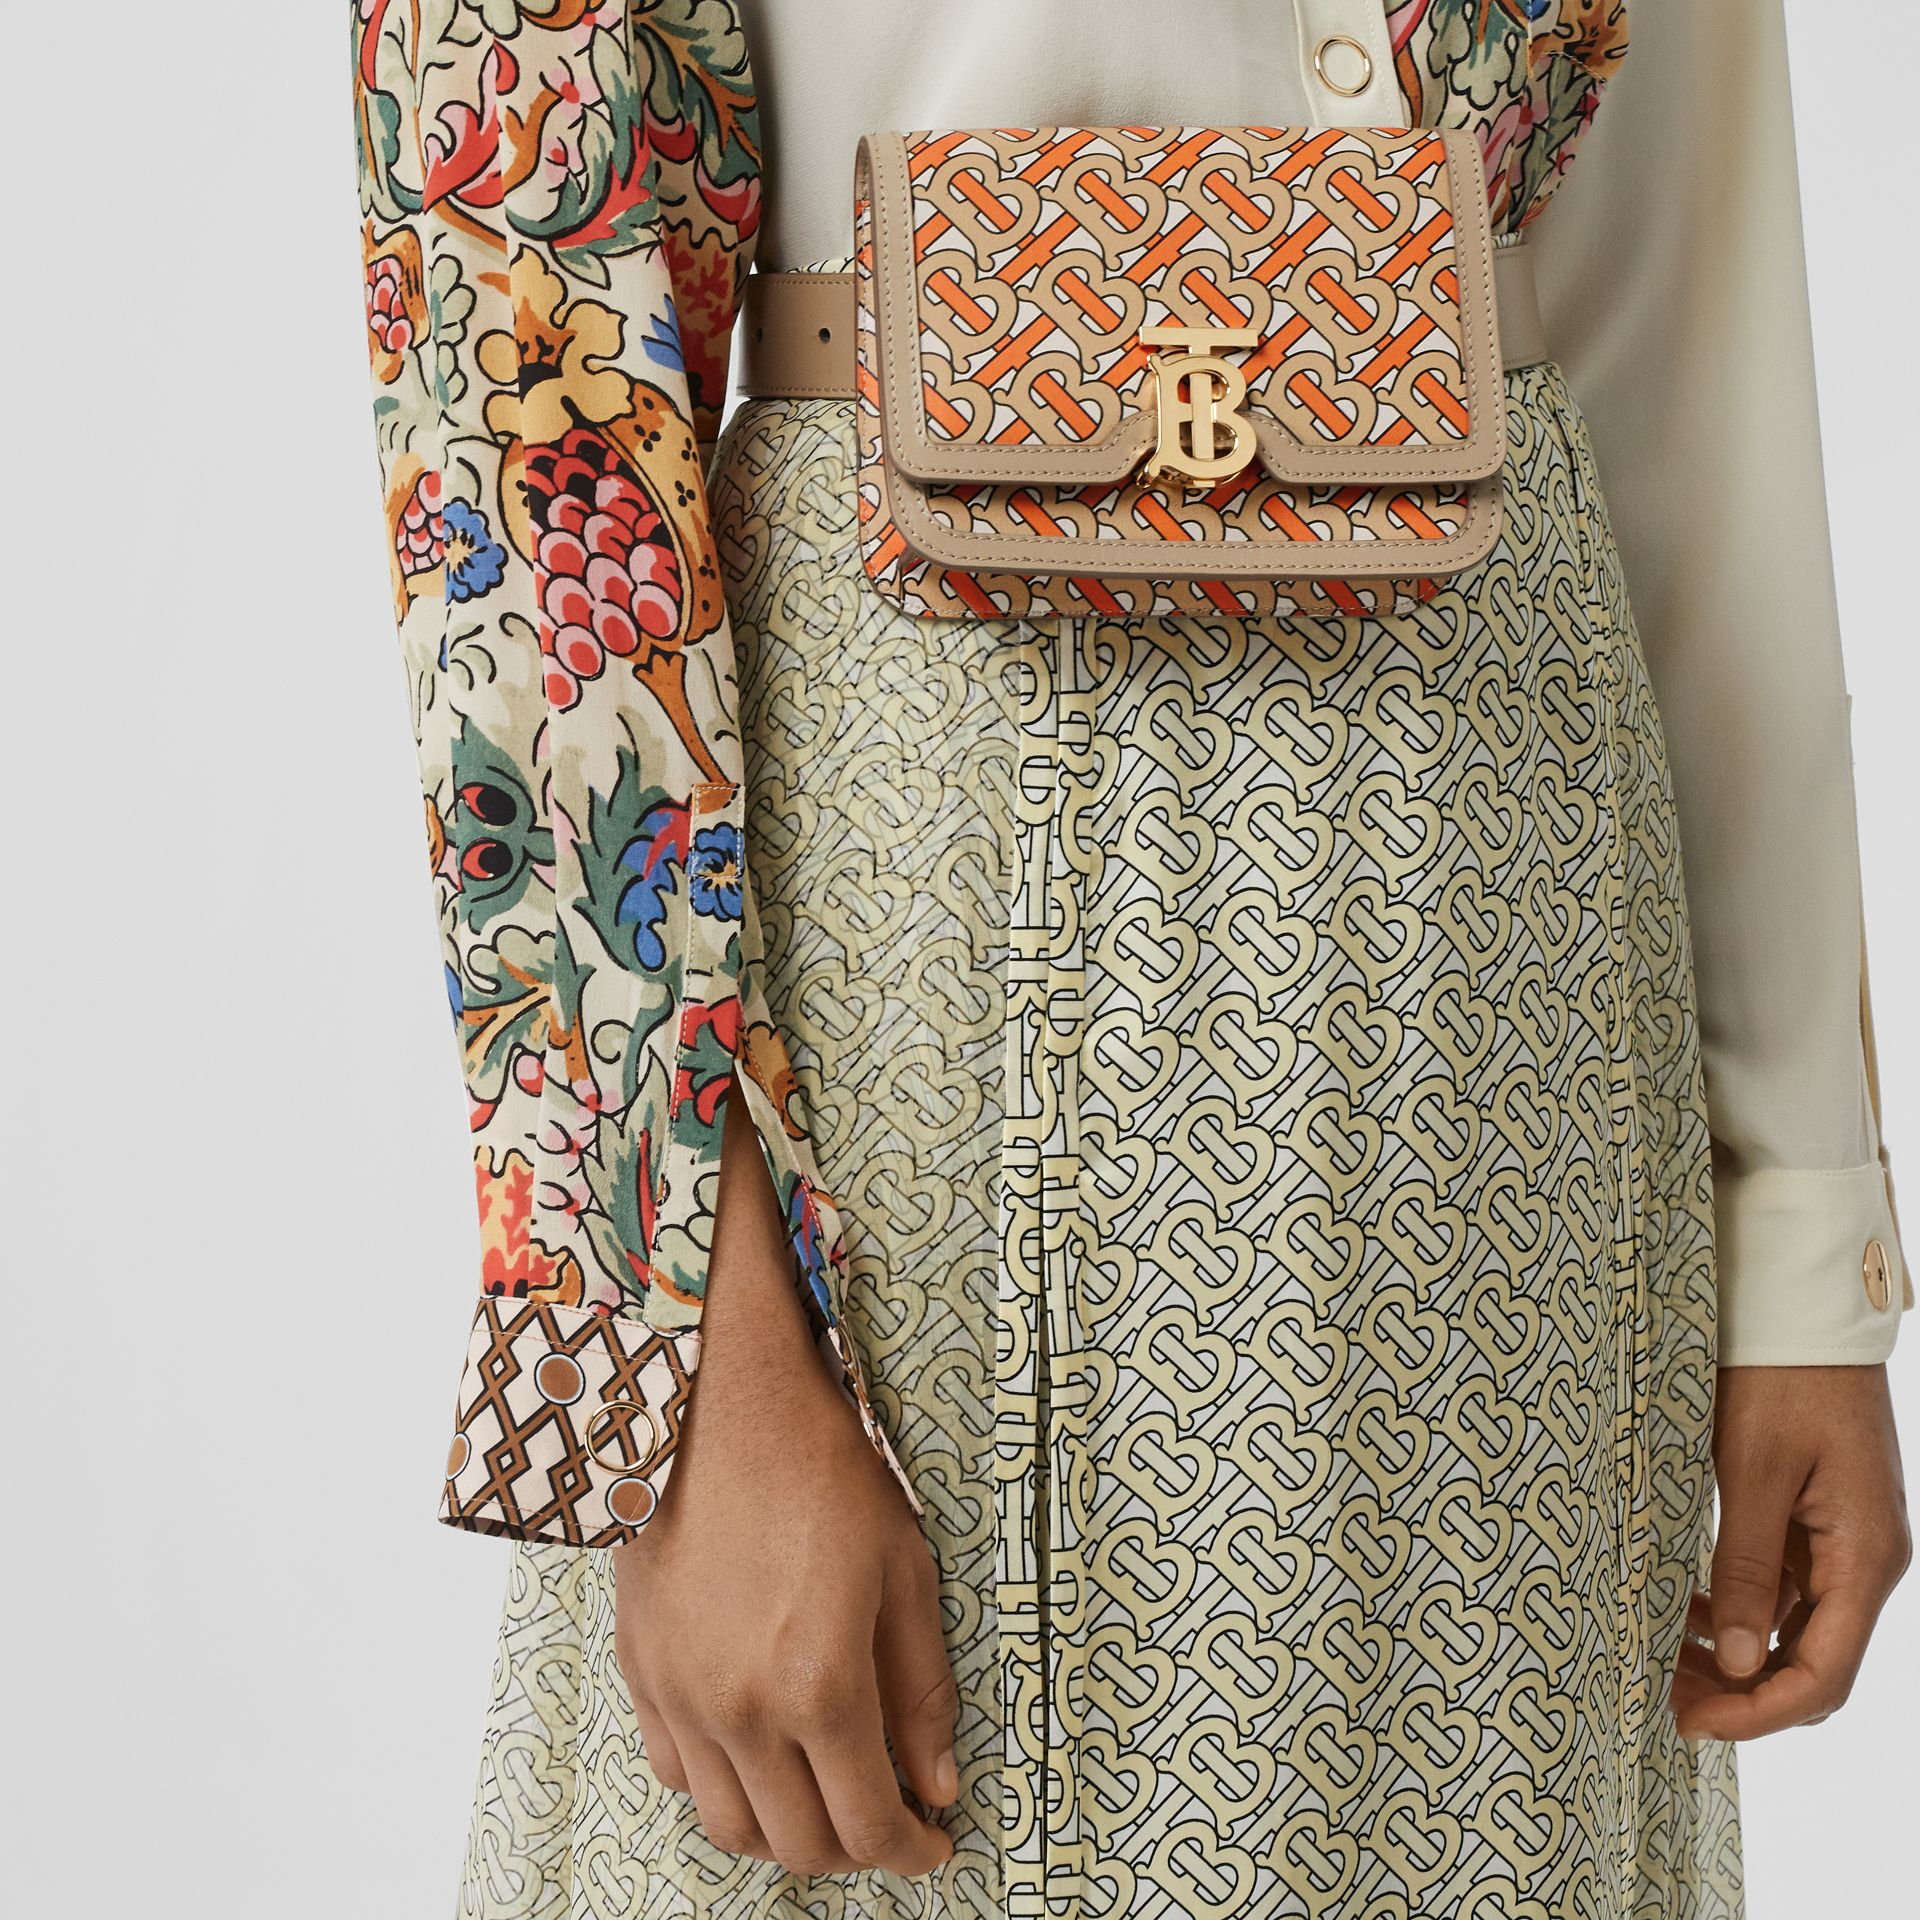 Belted Monogram Print Leather TB Bag in Bright Orange - Women | Burberry United States - gallery image 2